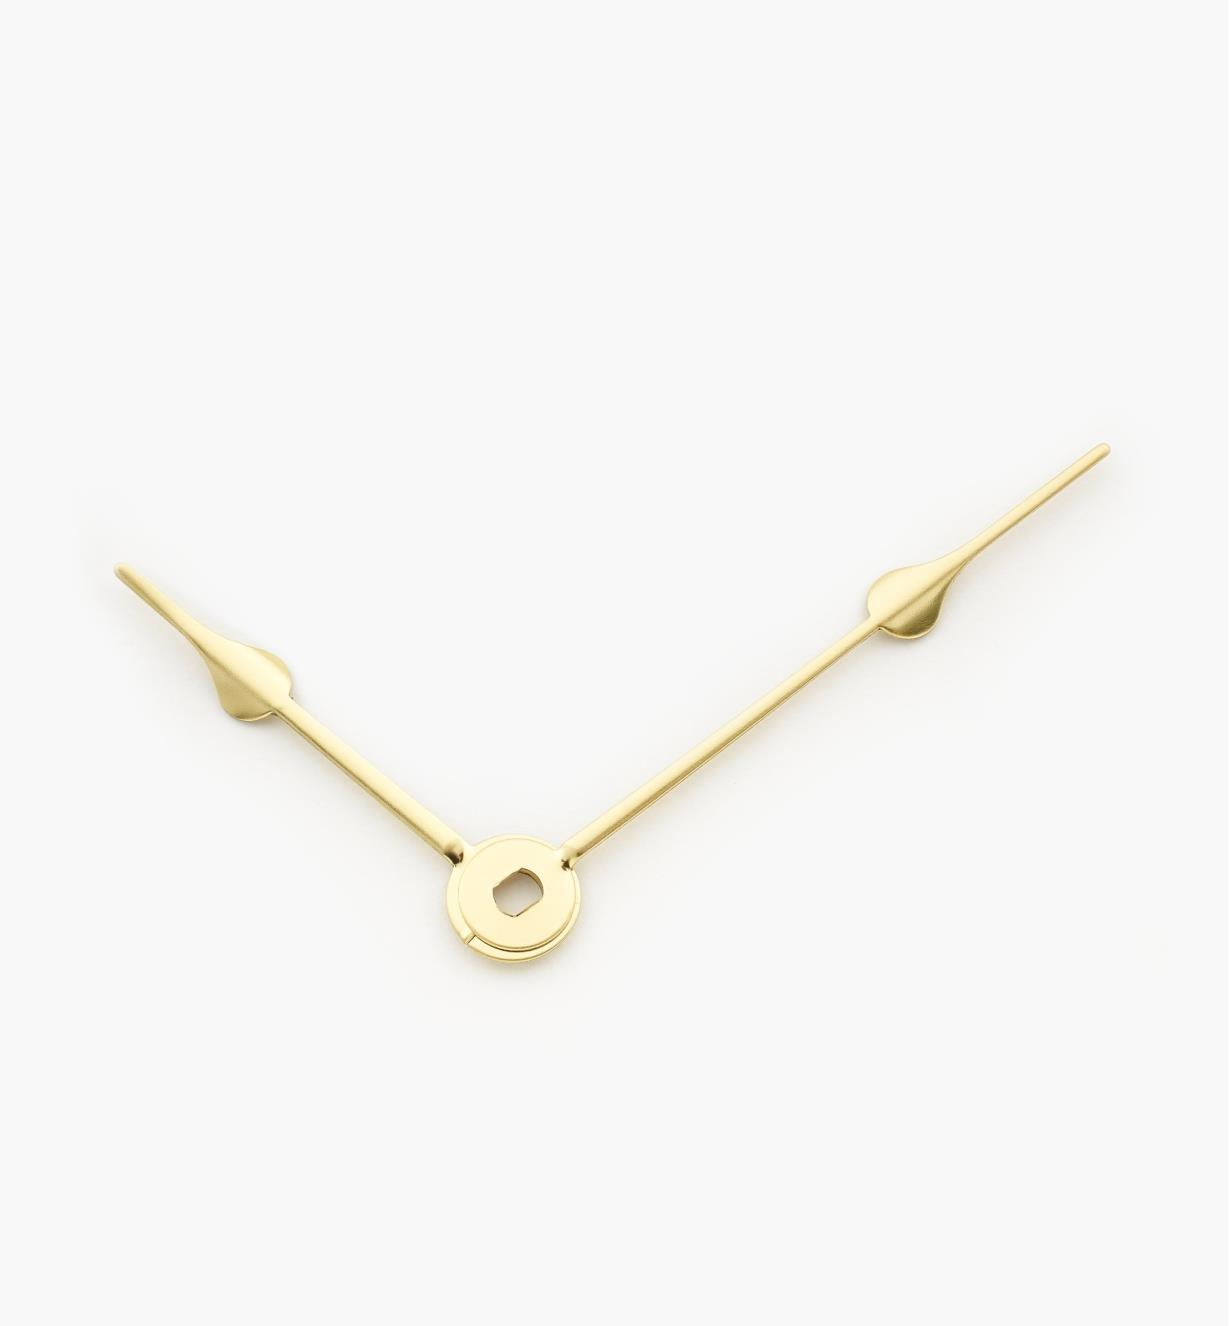 "46K0902 - 2 1/2"" Gold Clock Hands, pr"